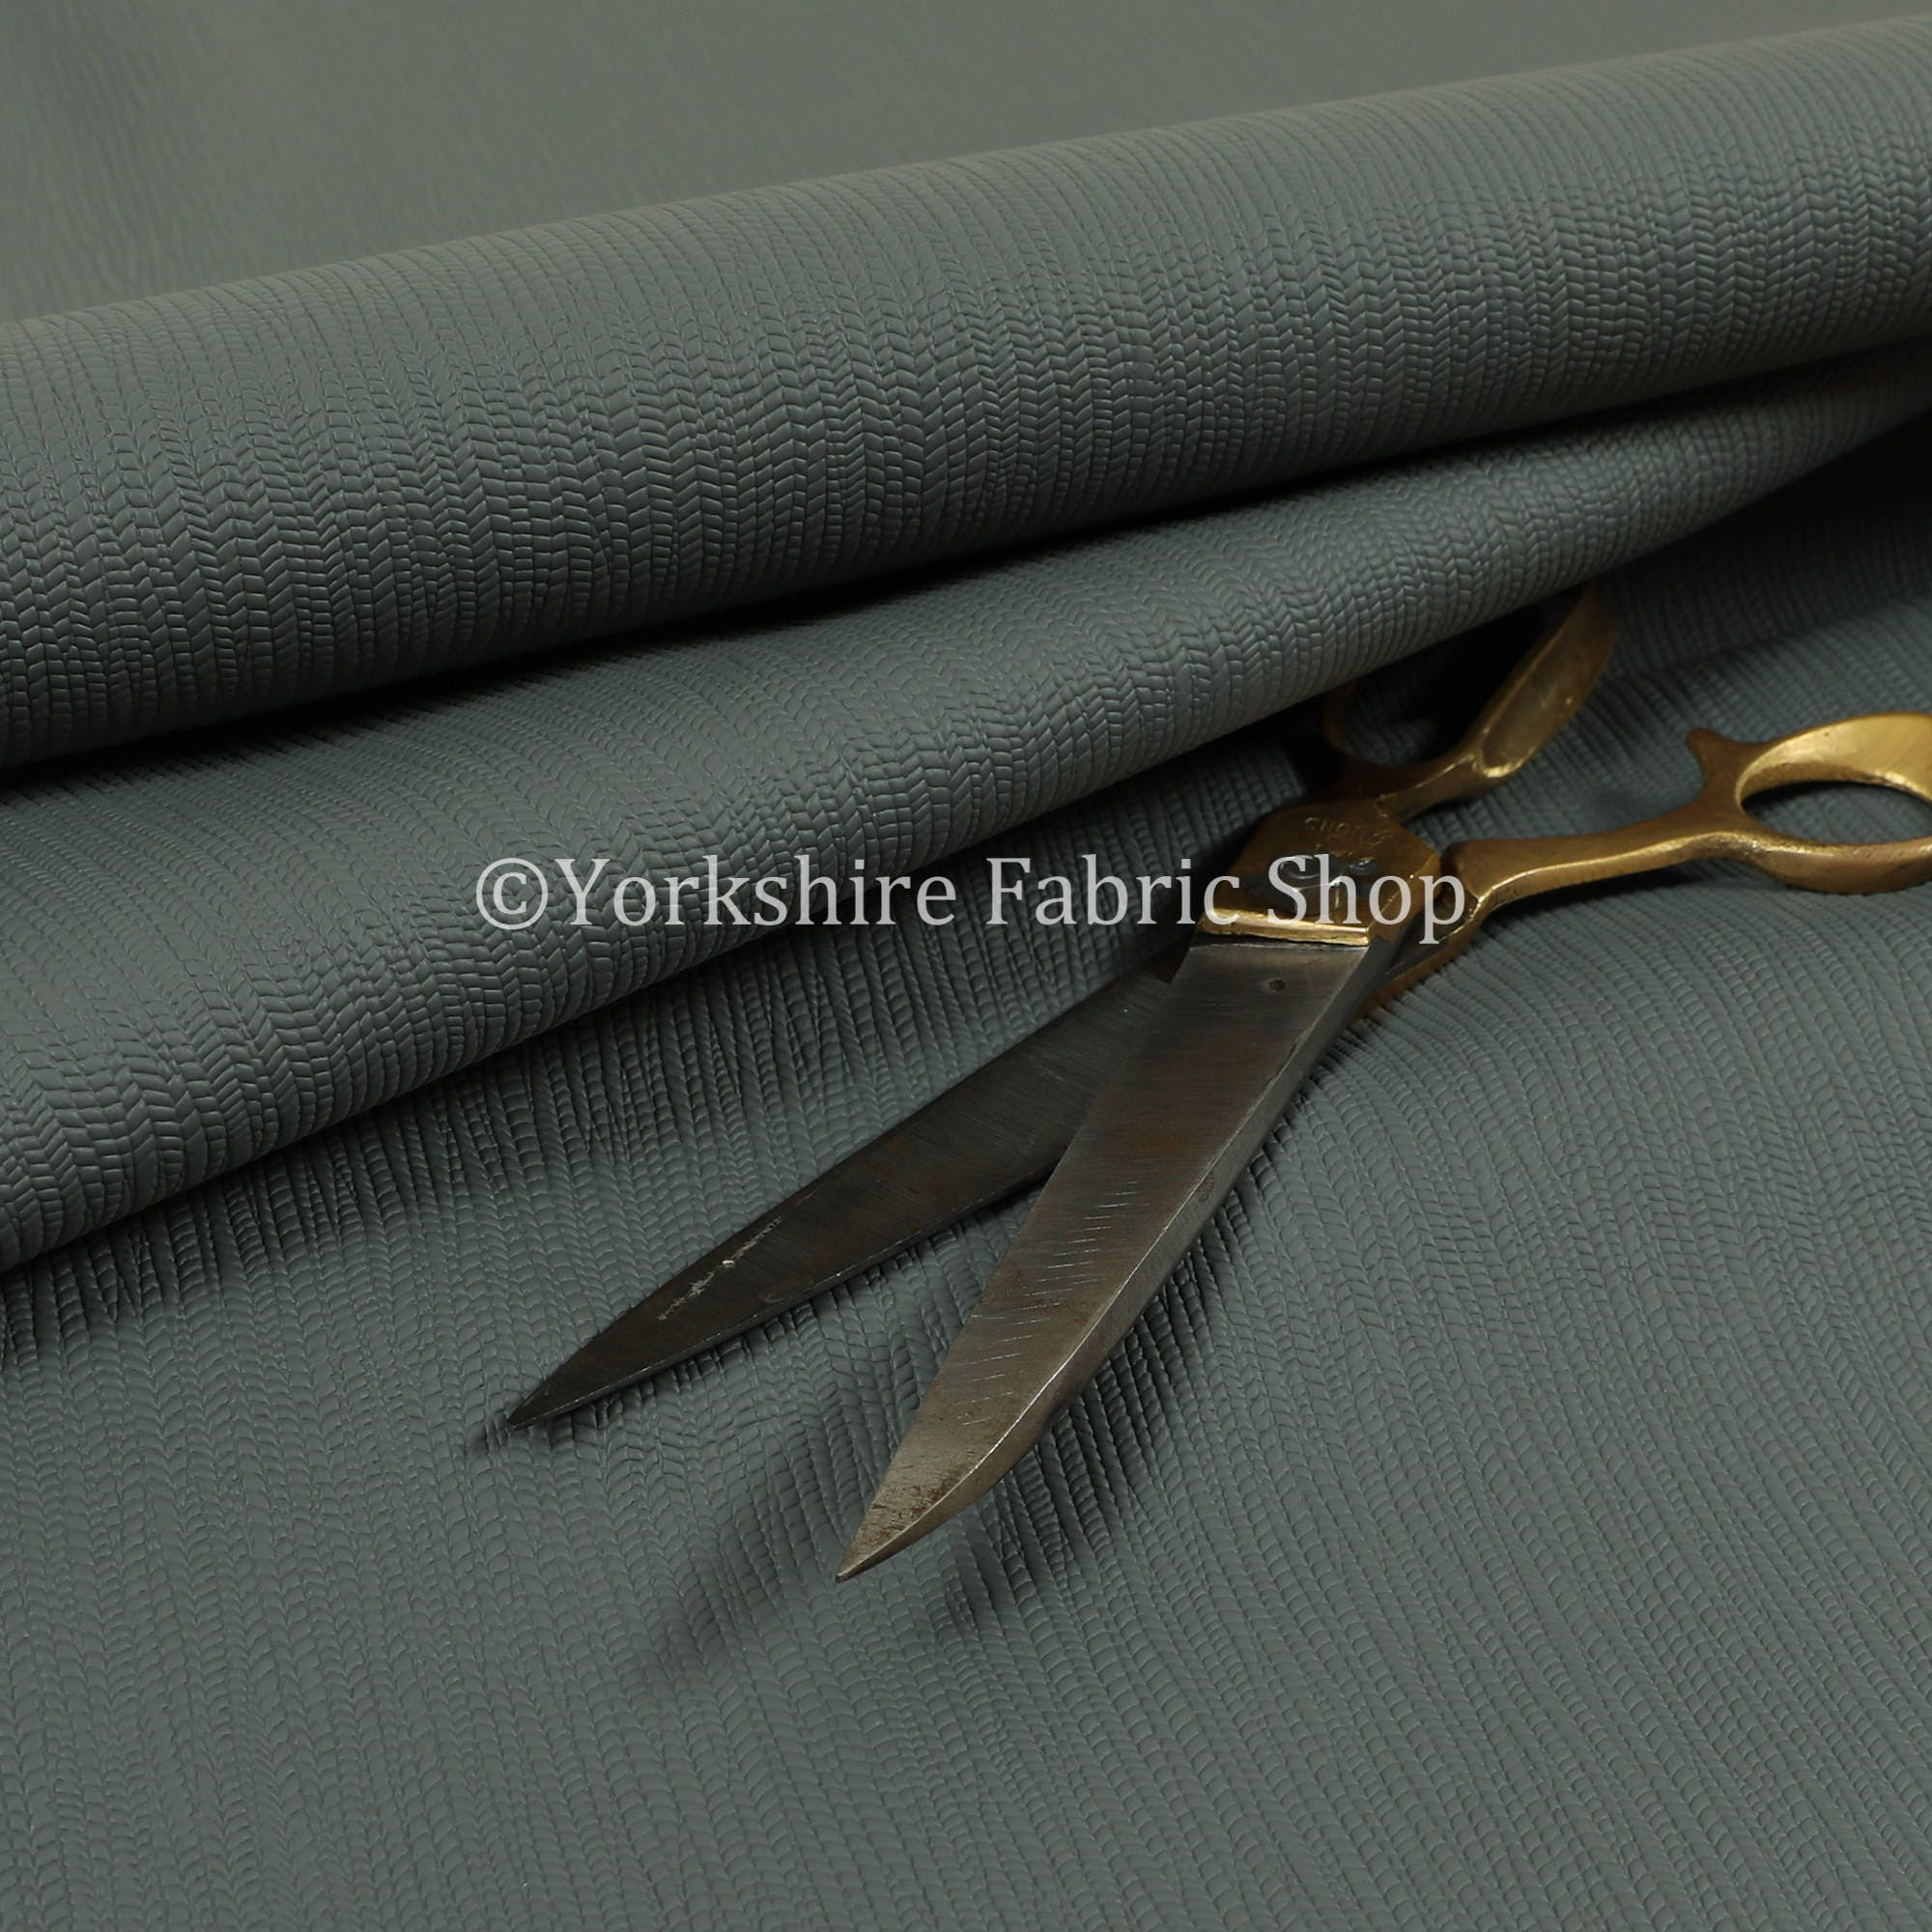 Faux Leather Shiny Designer Textured Pattern In Silver Colour Upholstery Fabric